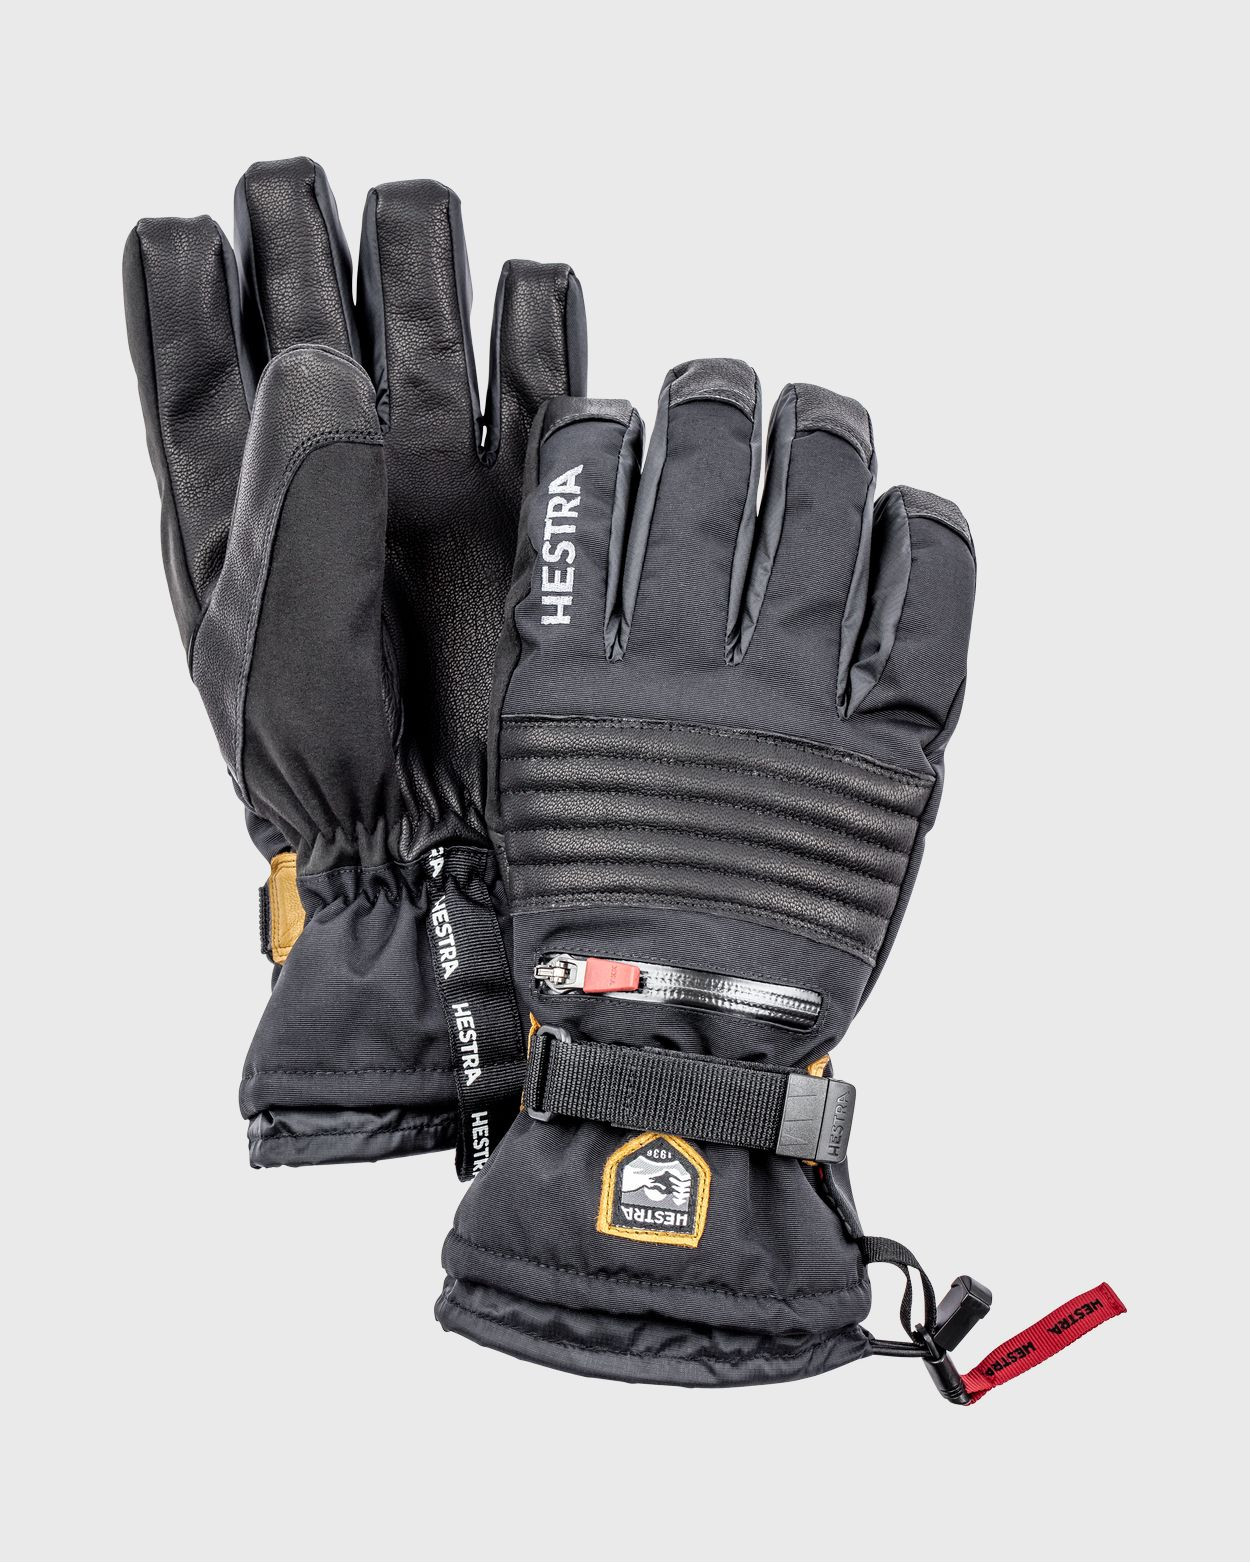 All Mountain CZone - 5 finger Gloves Hestra Black 6 - XS